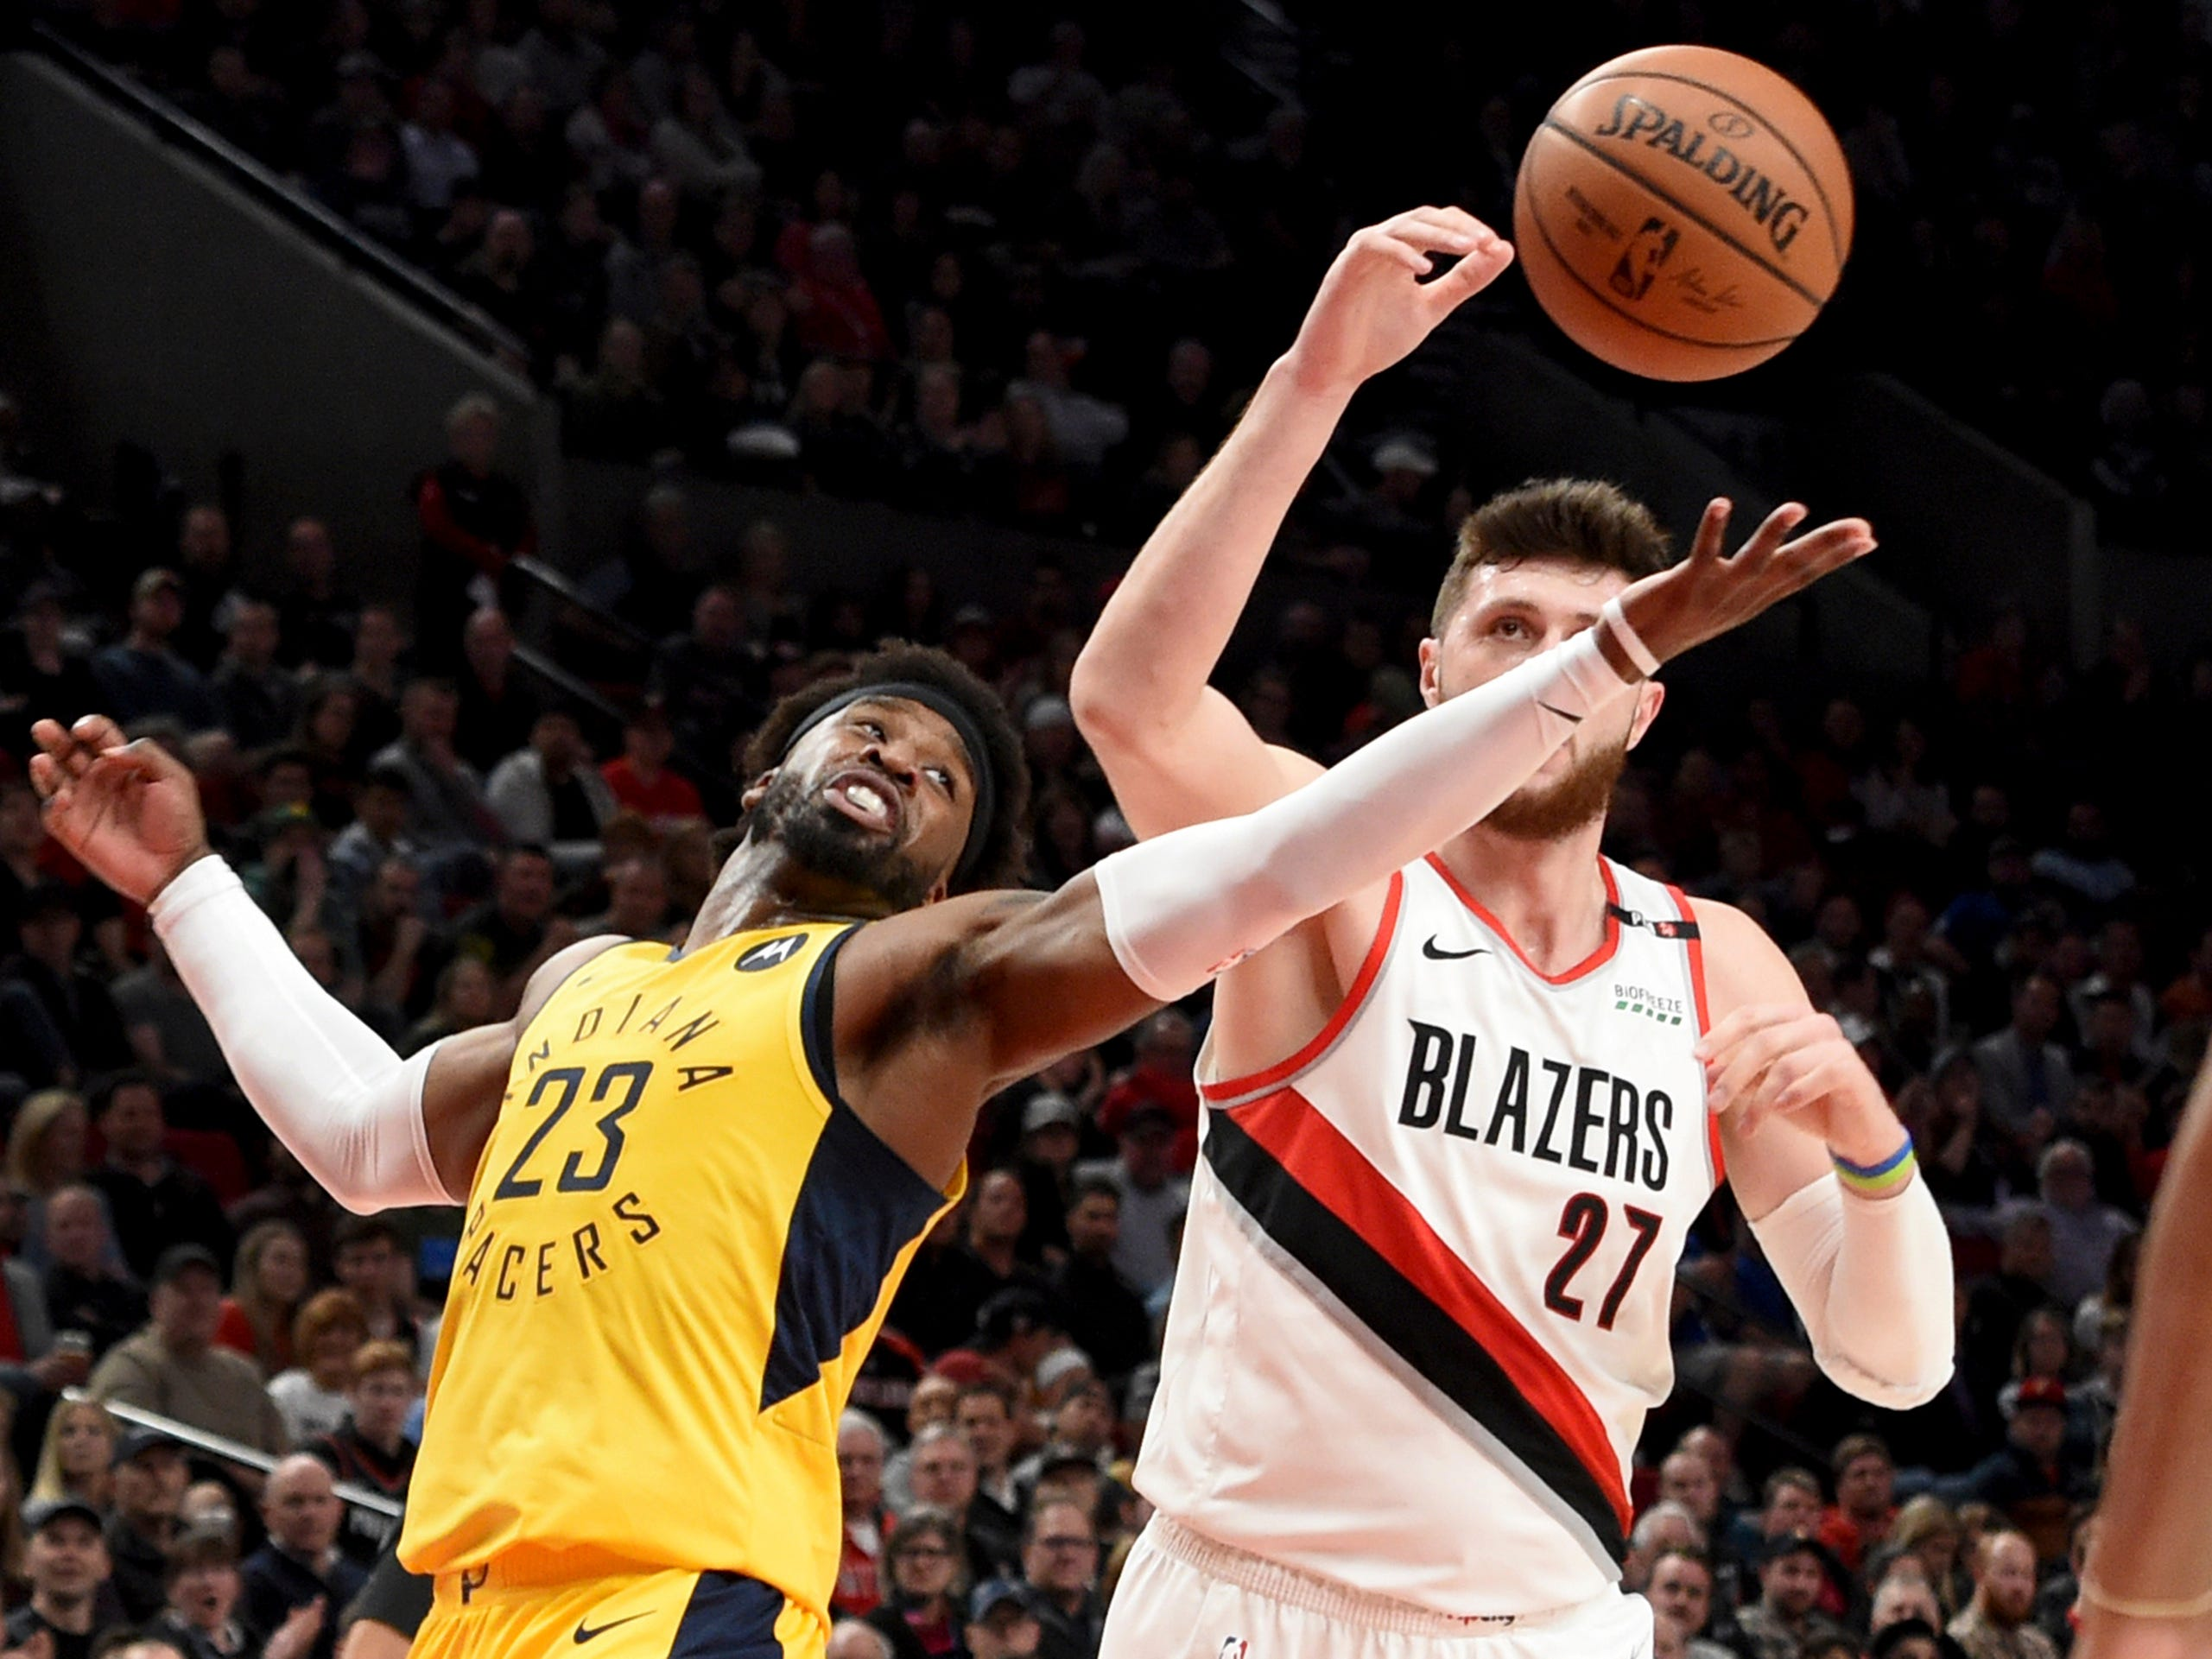 Indiana Pacers guard Wesley Matthews, left, battles for a rebound with Portland Trail Blazers center Jusuf Nurkic, right, during the first half of an NBA basketball game in Portland, Ore., Monday March 18, 2019.